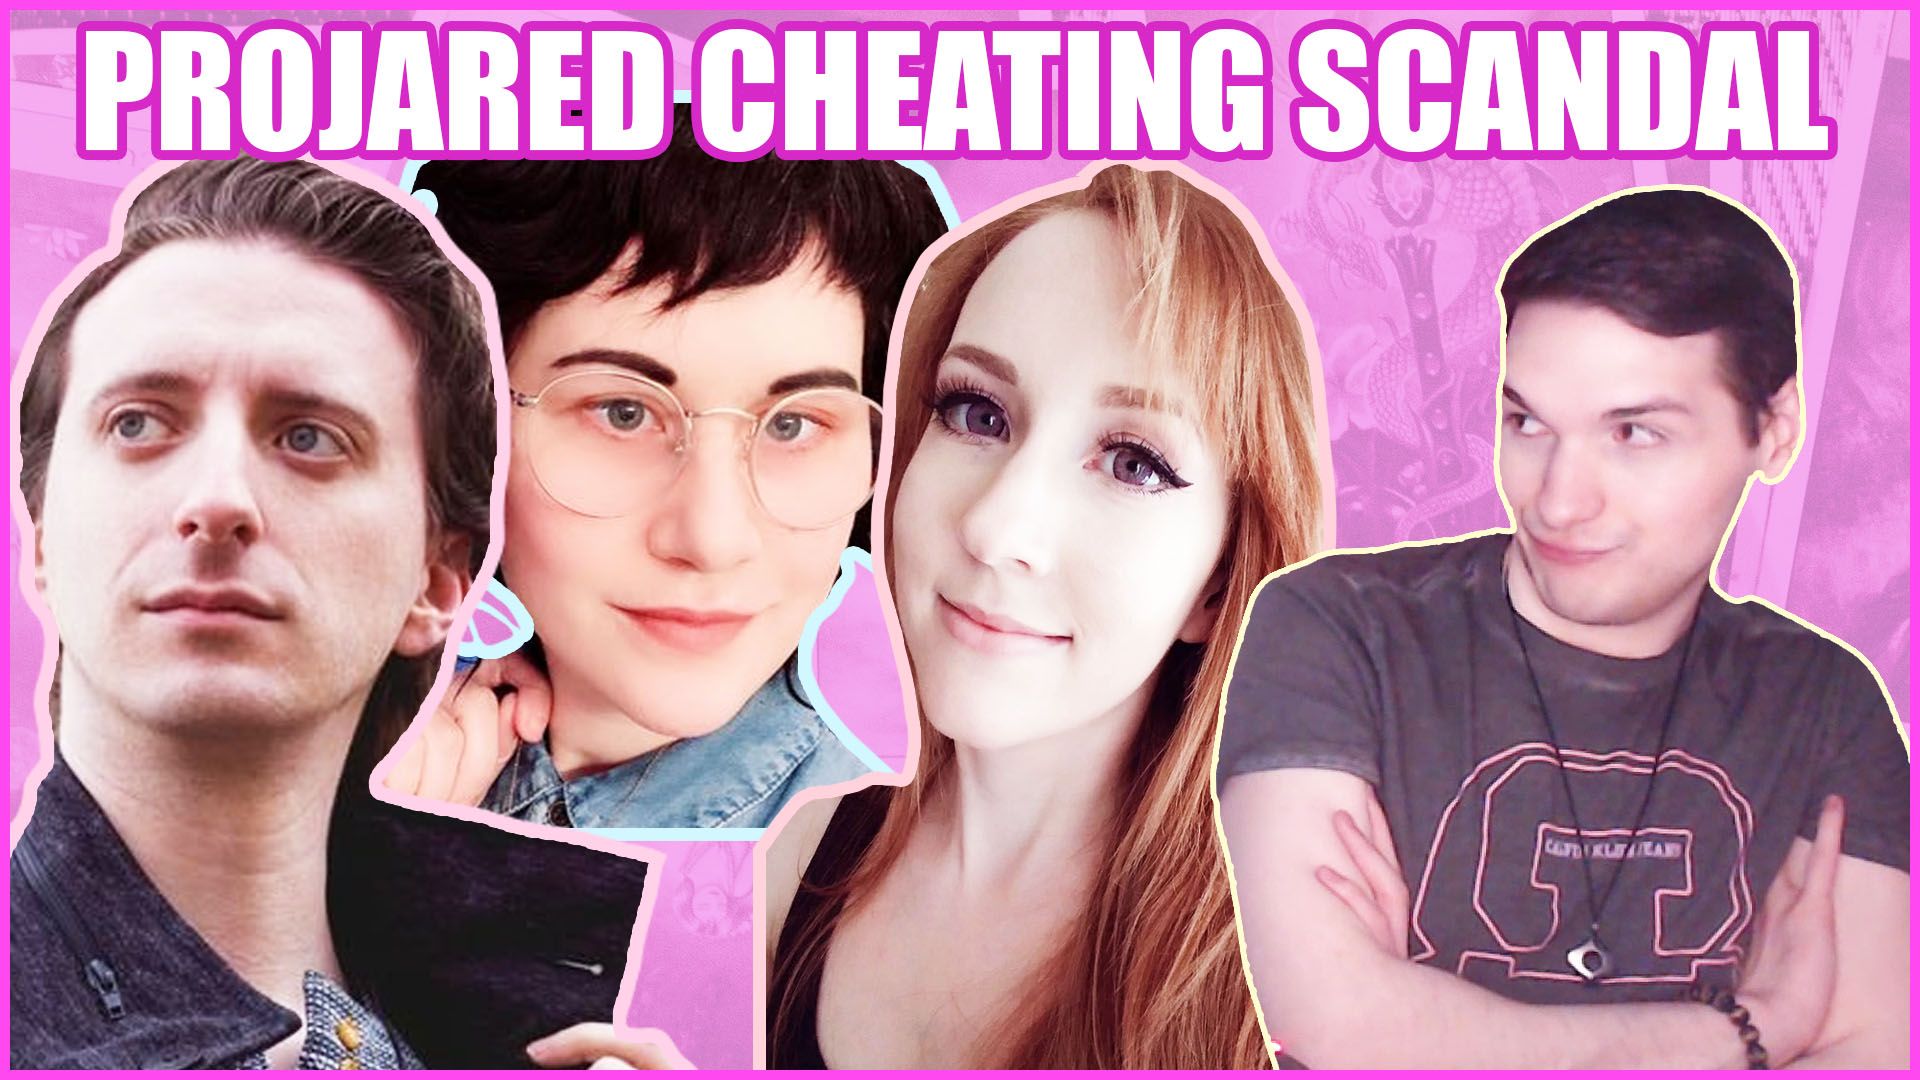 ProJared Cheating Scandal